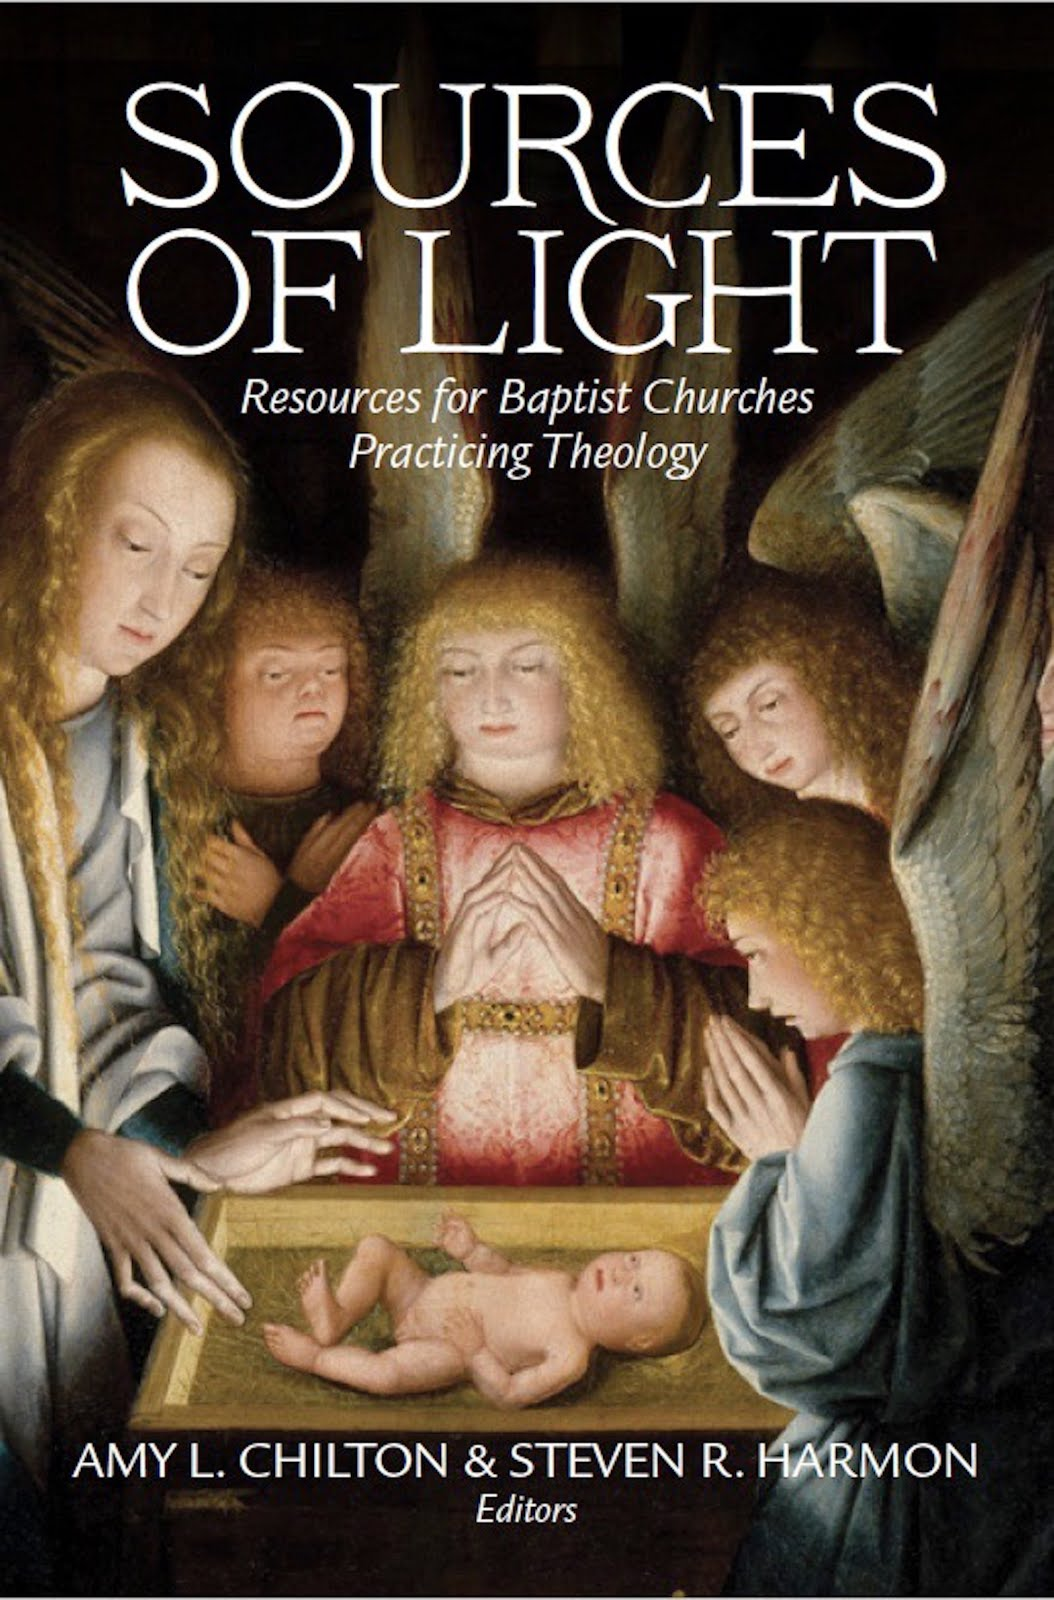 Sources of Light: Resources for Baptist Churches Practicing Theology